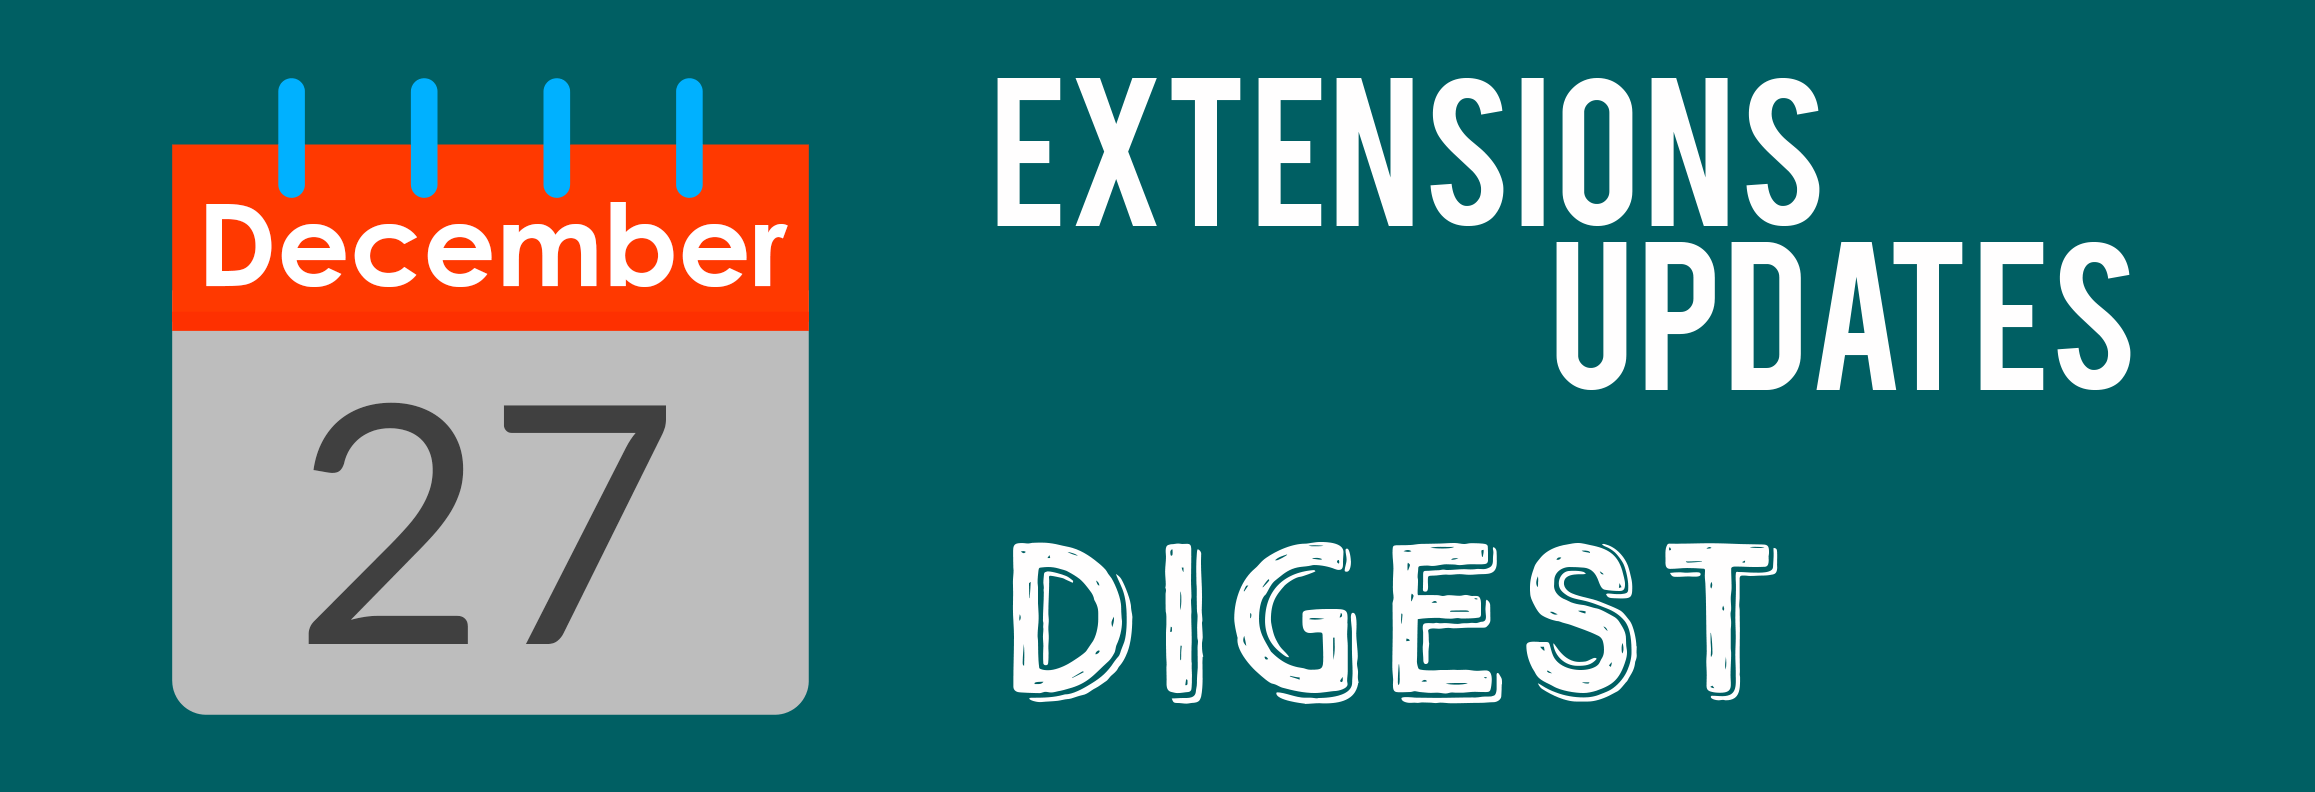 Mirasvit Latest (and the last in 2016) Extensions Update Digest